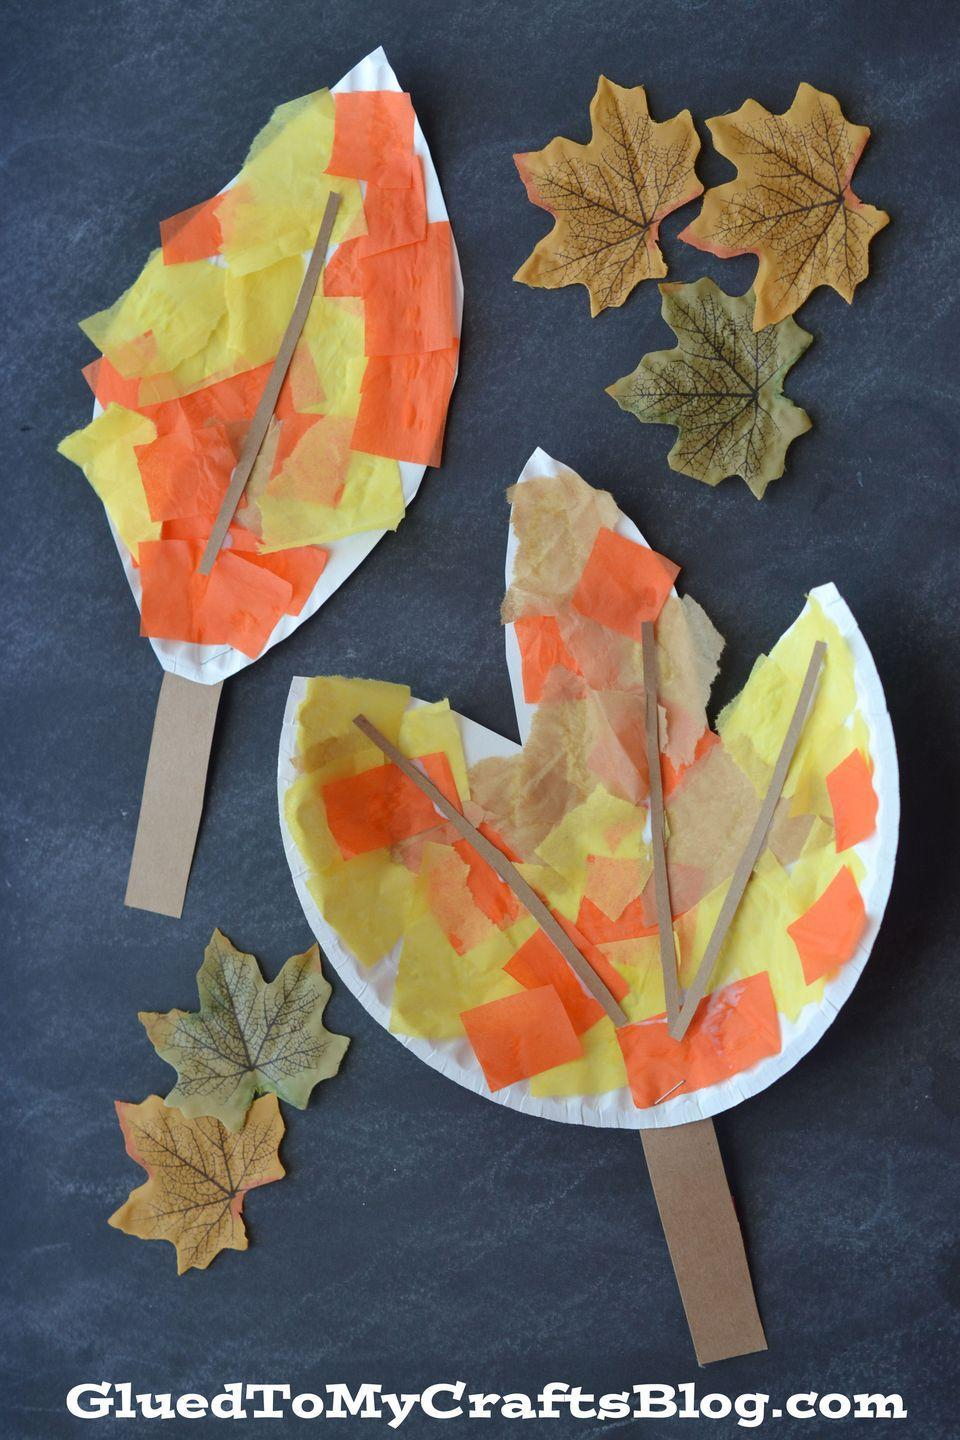 """<p>Mimic the changing leaves outside with these kid-friendly versions, embellished with stickers, doodles and glitter glue. </p><p><em><a href=""""http://gluedtomycraftsblog.com/2015/08/paper-plate-leaf-kid-craft.html"""" rel=""""nofollow noopener"""" target=""""_blank"""" data-ylk=""""slk:Get the tutorial at Glued to My Crafts »"""" class=""""link rapid-noclick-resp"""">Get the tutorial at Glued to My Crafts »</a></em> </p>"""